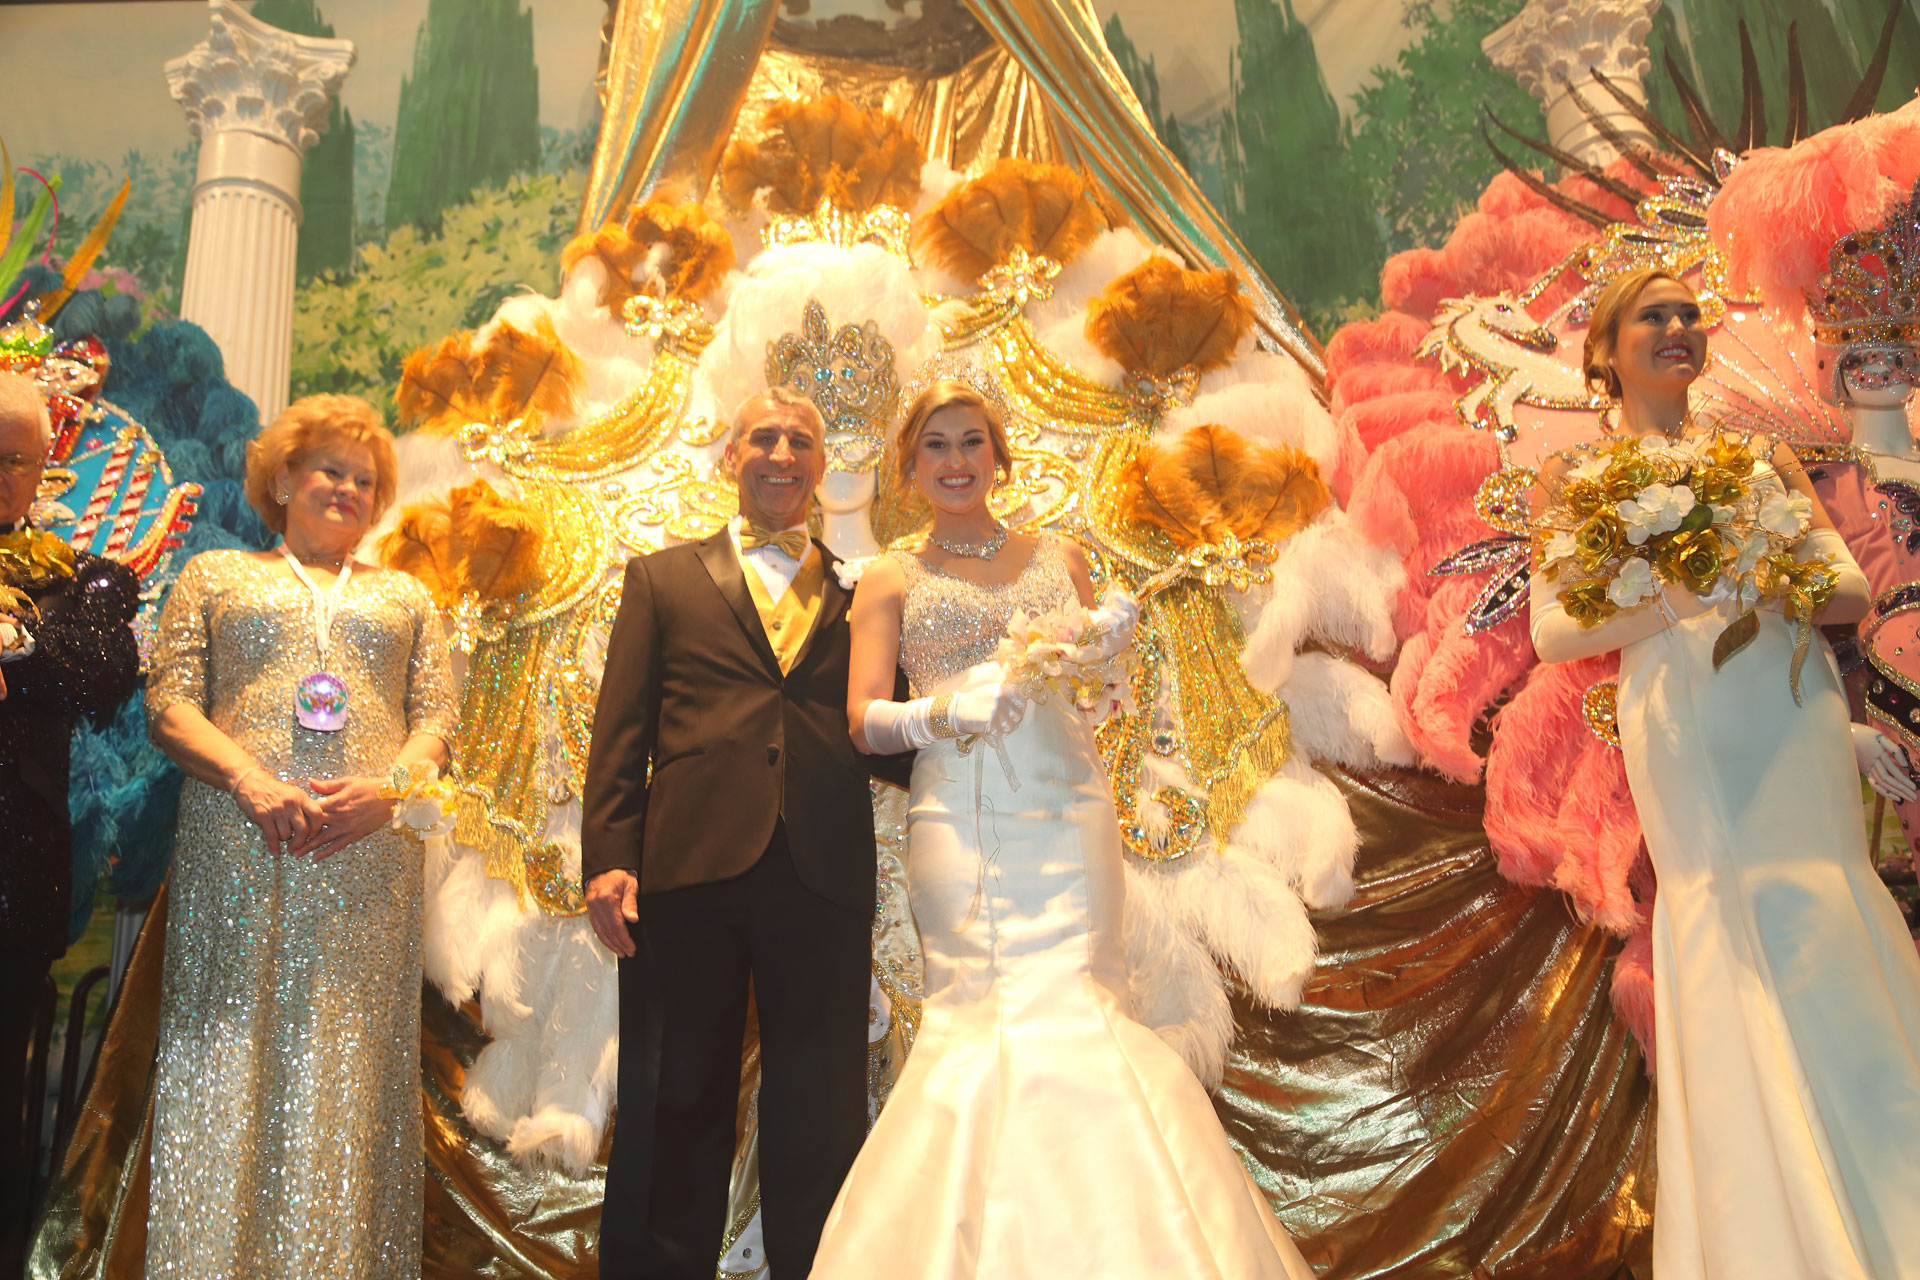 Endymion photos: Super-krewe's parade brings 'wow' factor ...